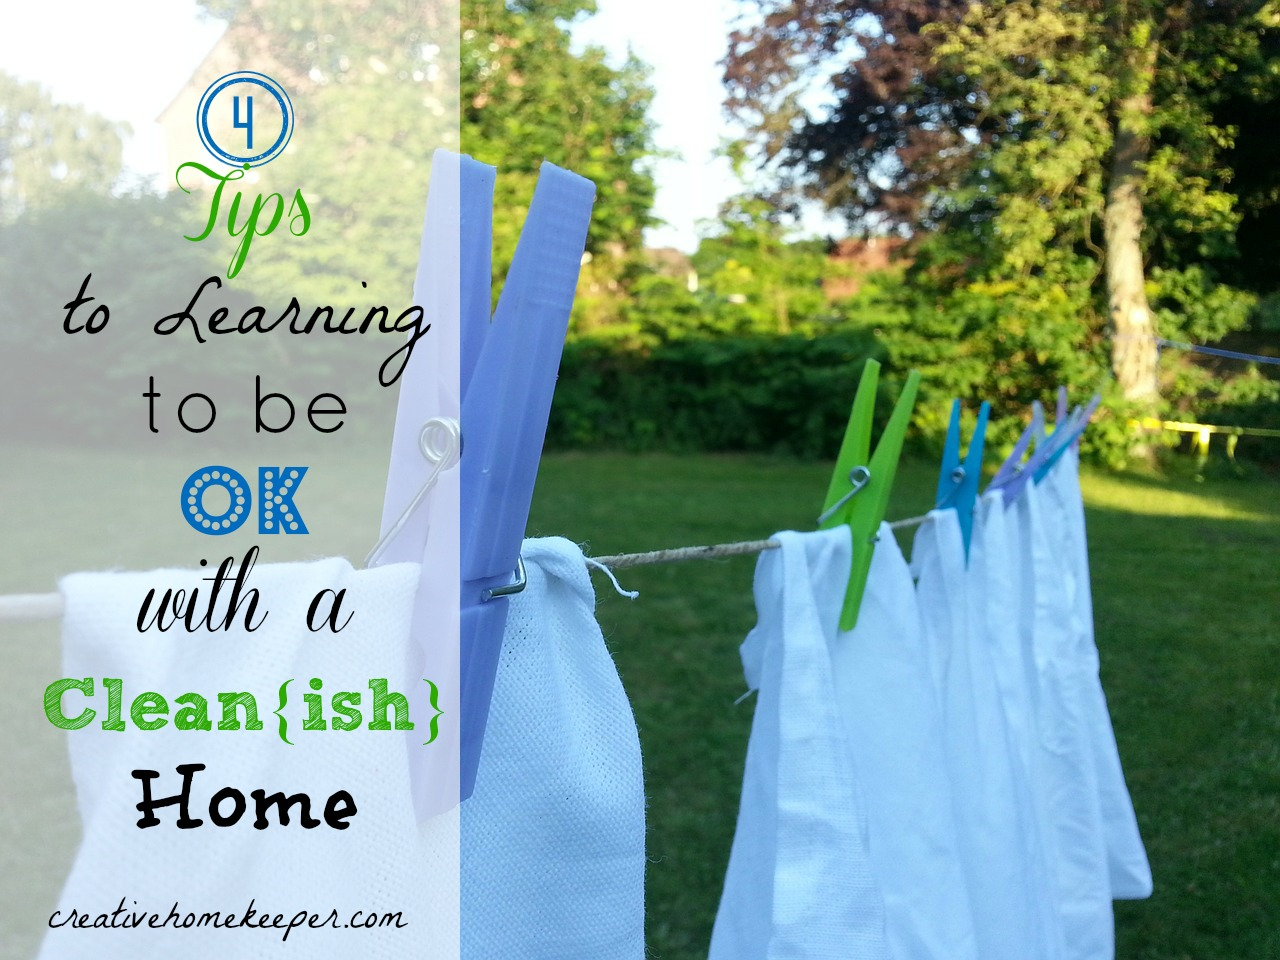 4 Tips to Learning to be OK with a Clean{ish} Home